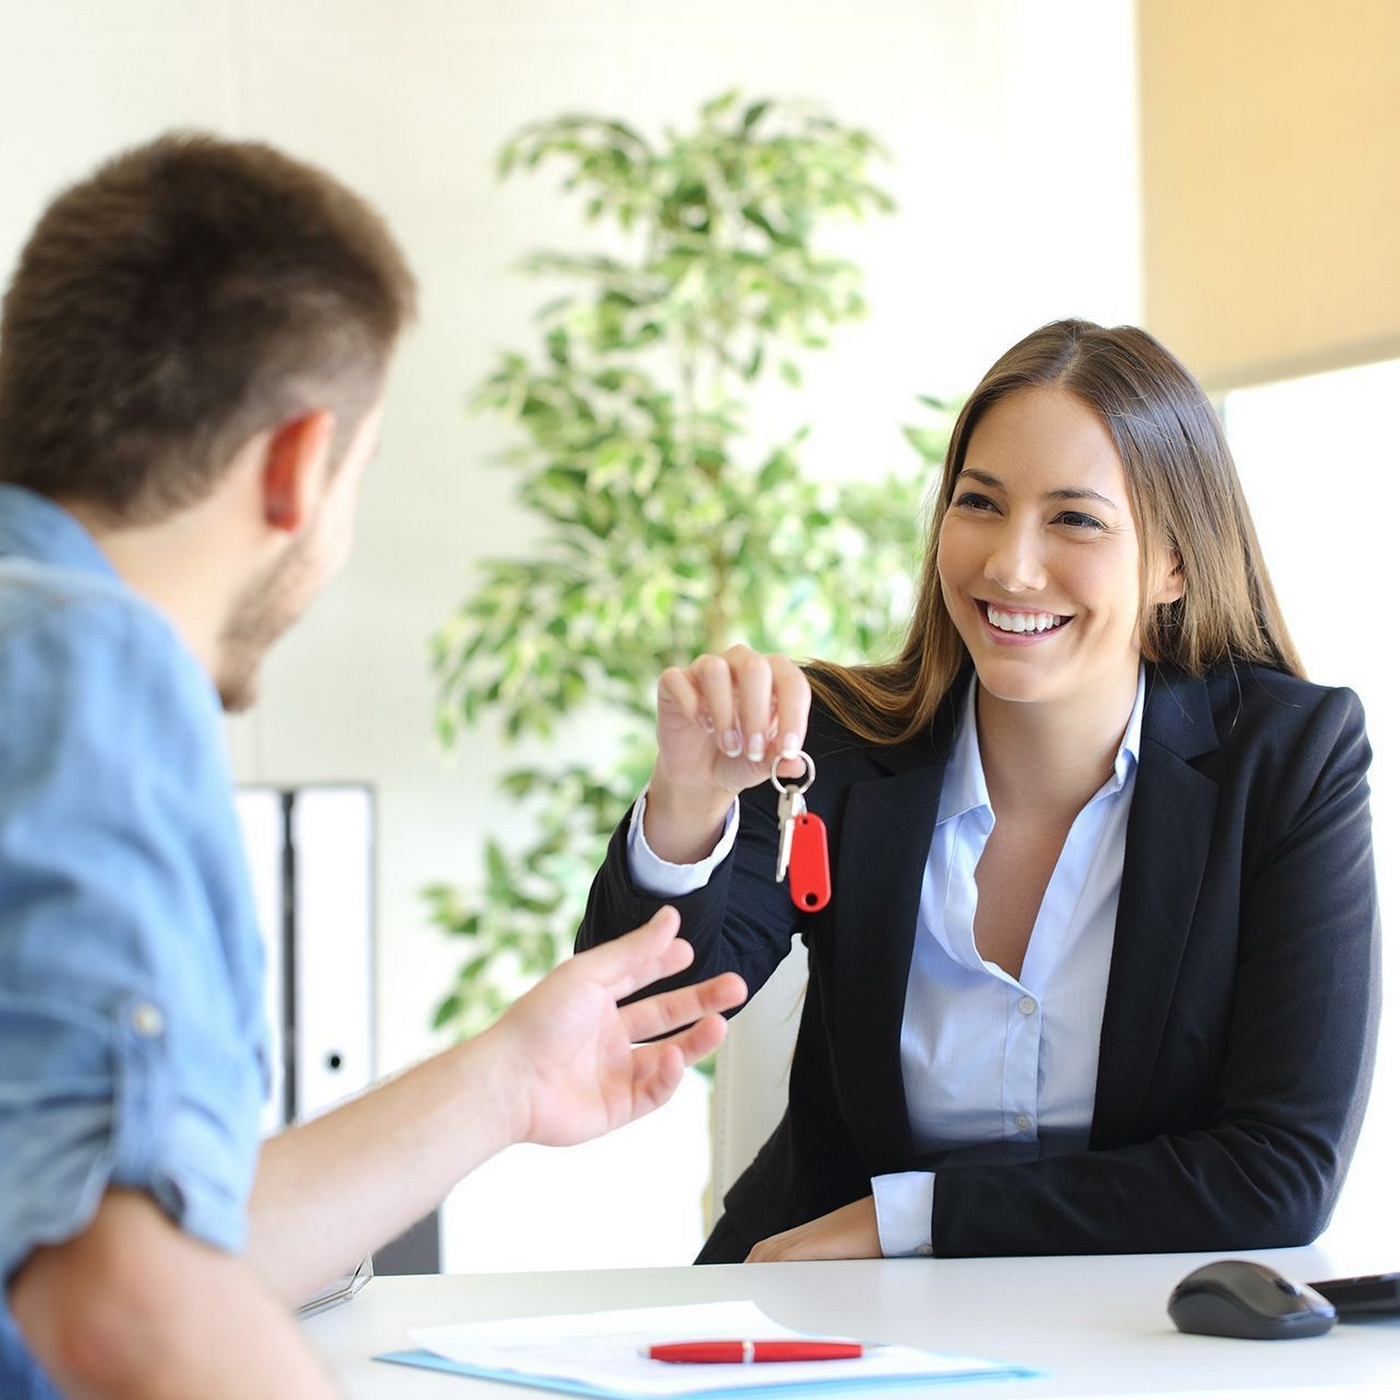 leasing agent handing keys to a resident